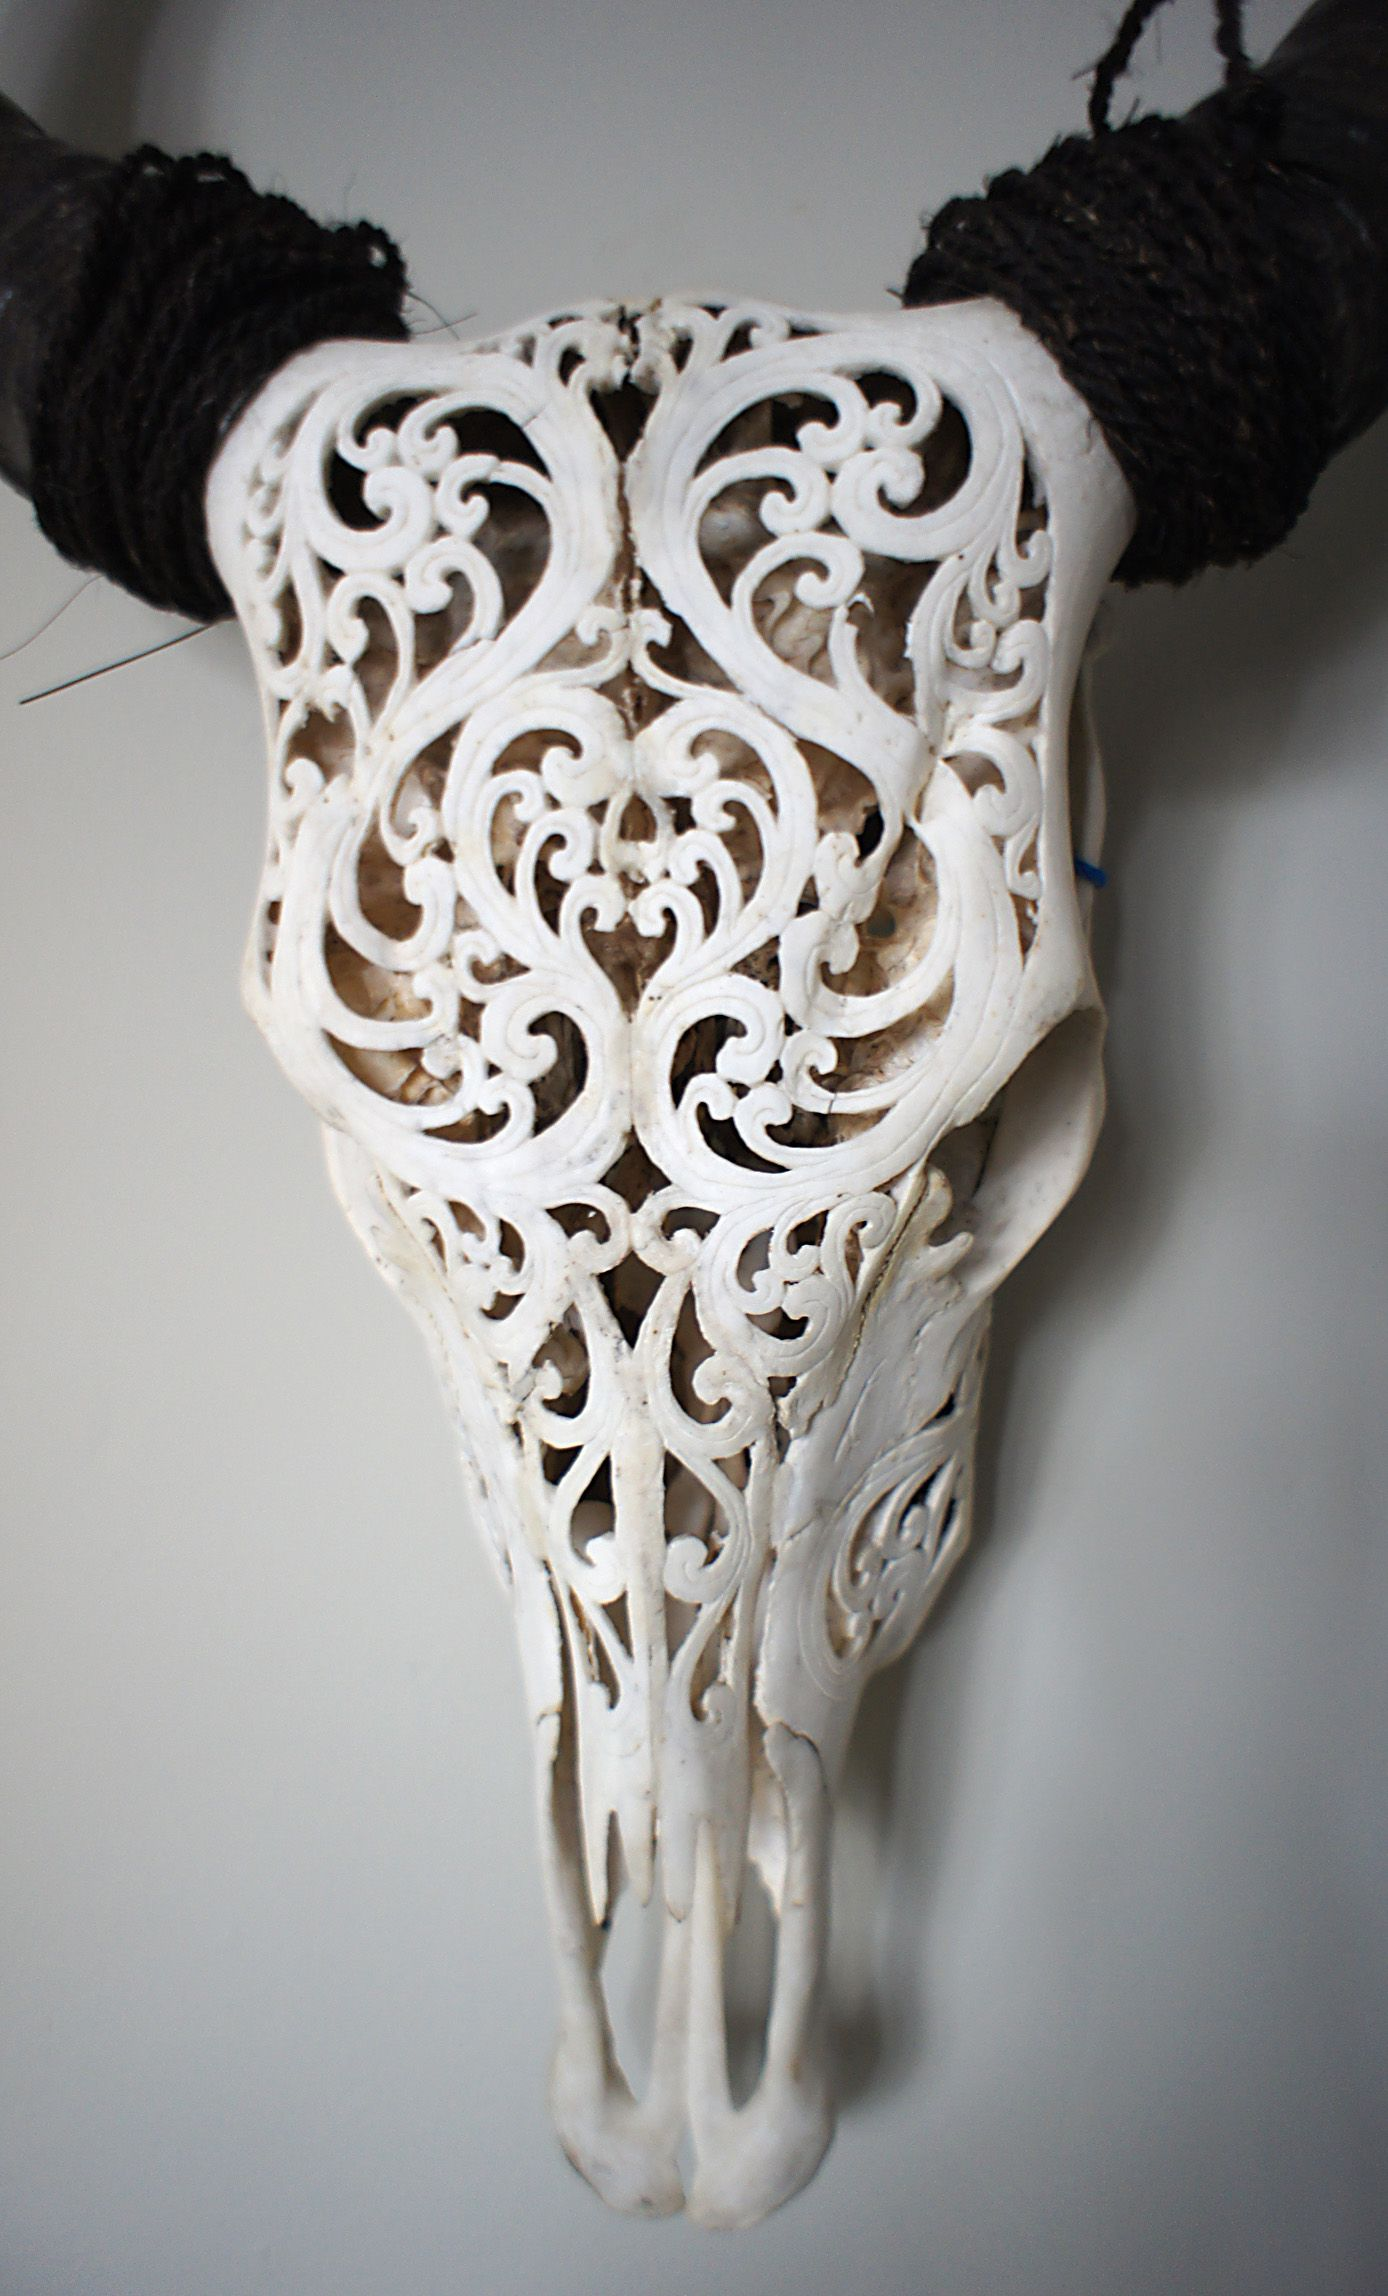 Carved skull beautiful buffalo has intricate roccoco free your mind tattoos others - Dekoration hirschgeweih ...